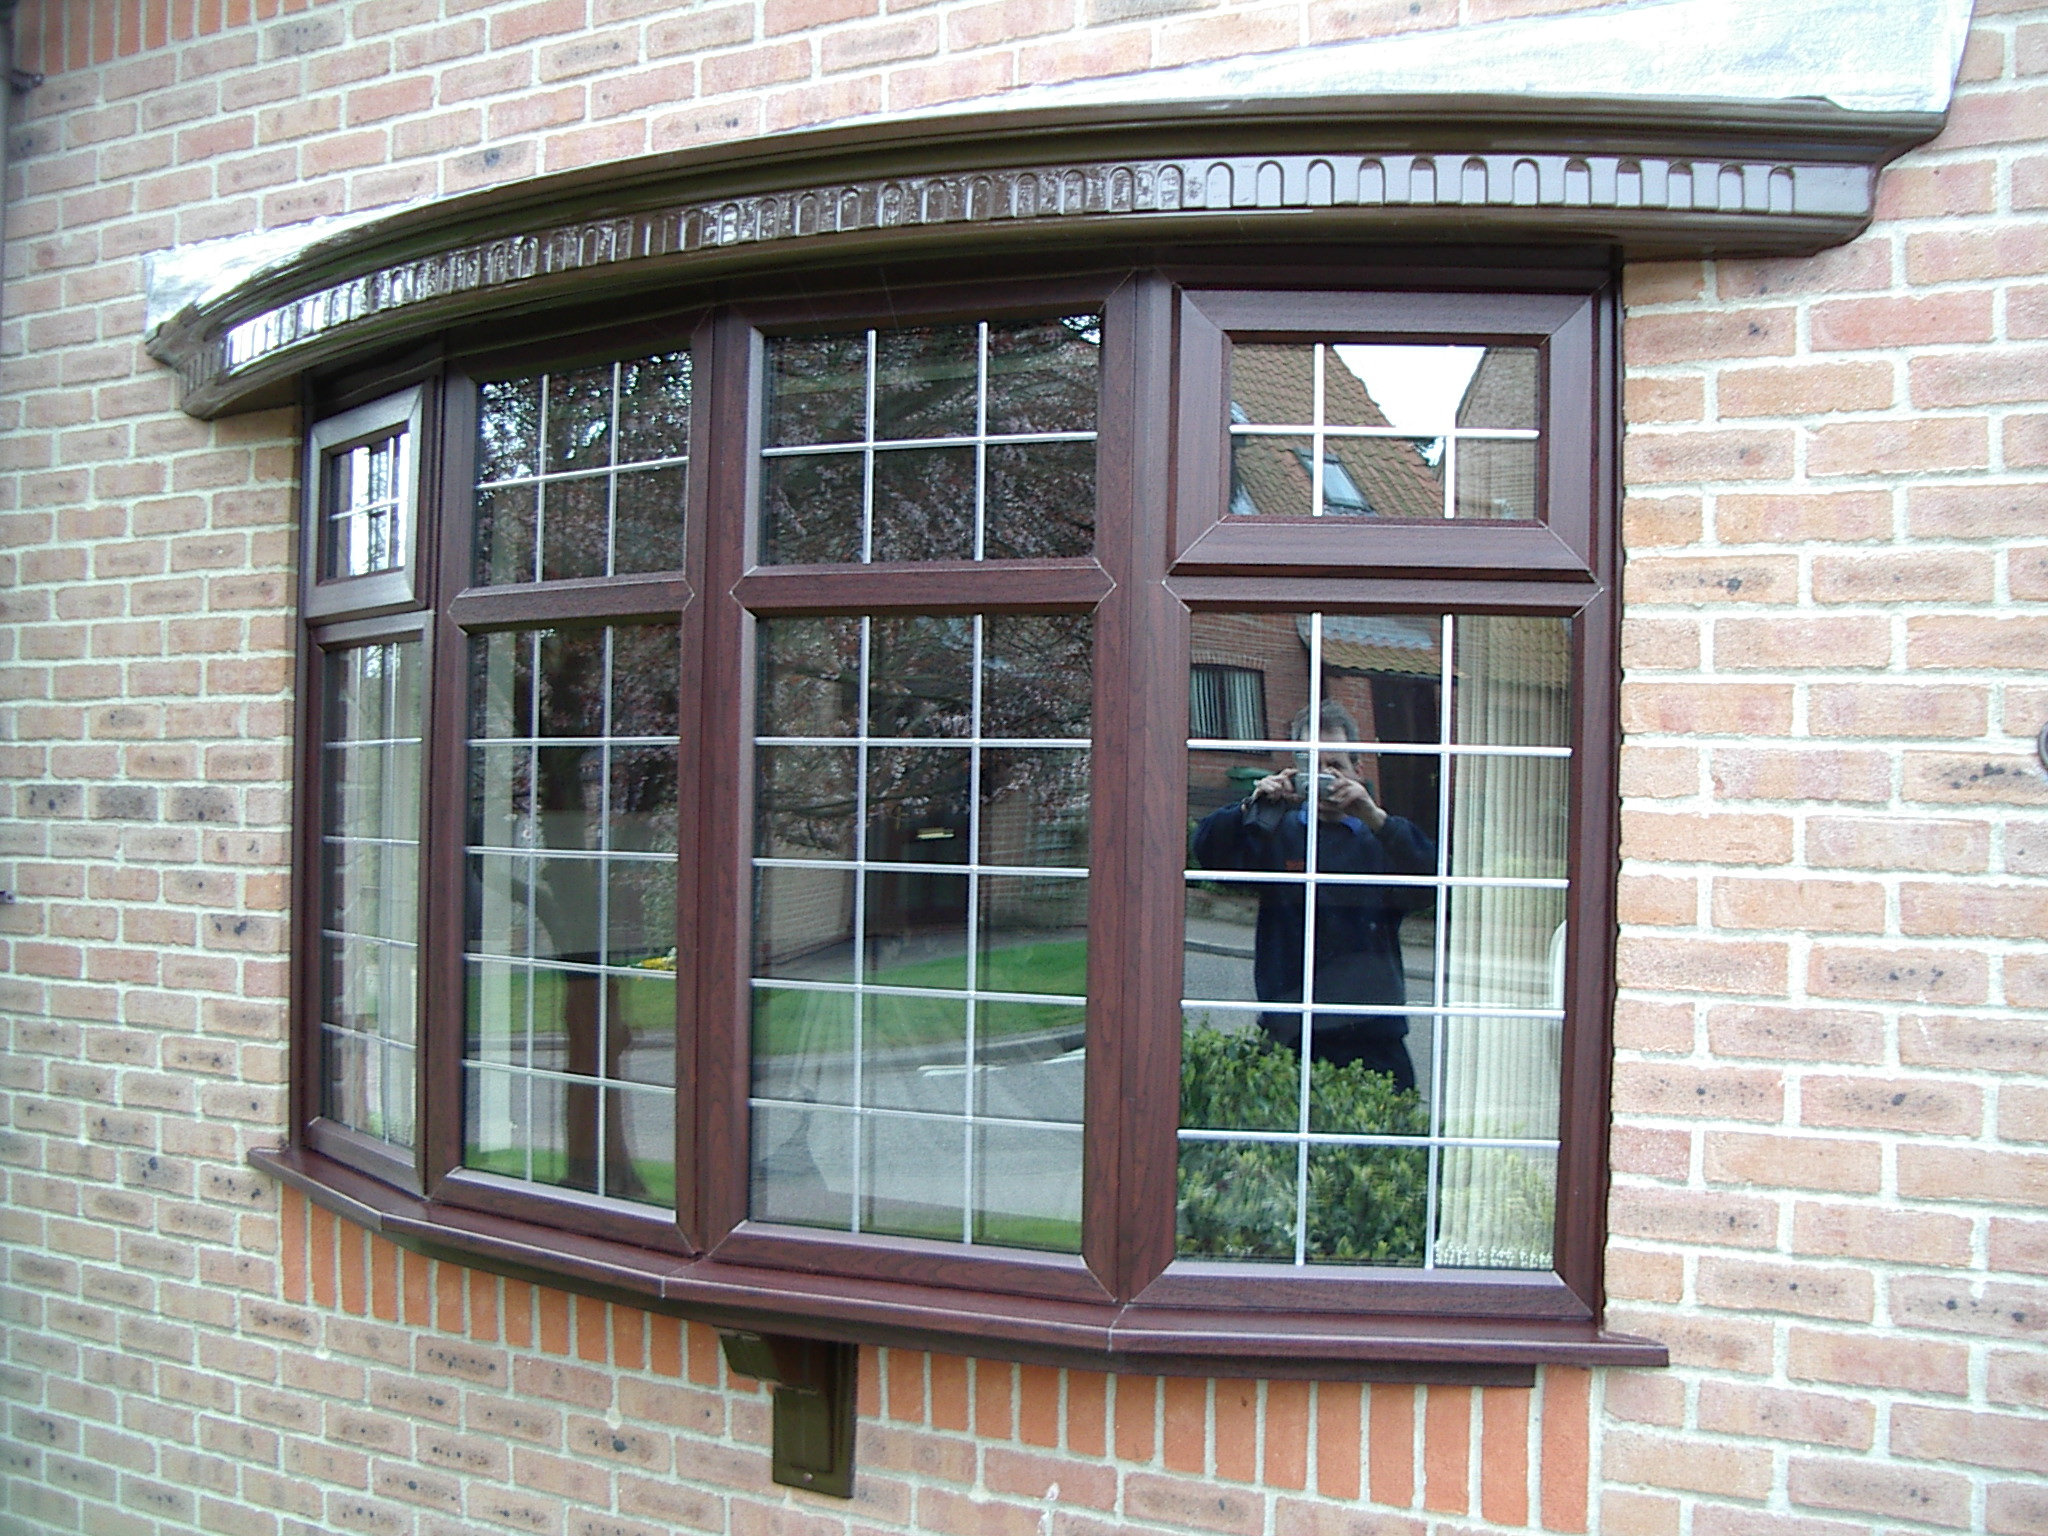 Gj kirk installations ltd east anglian norwich based for Top window design